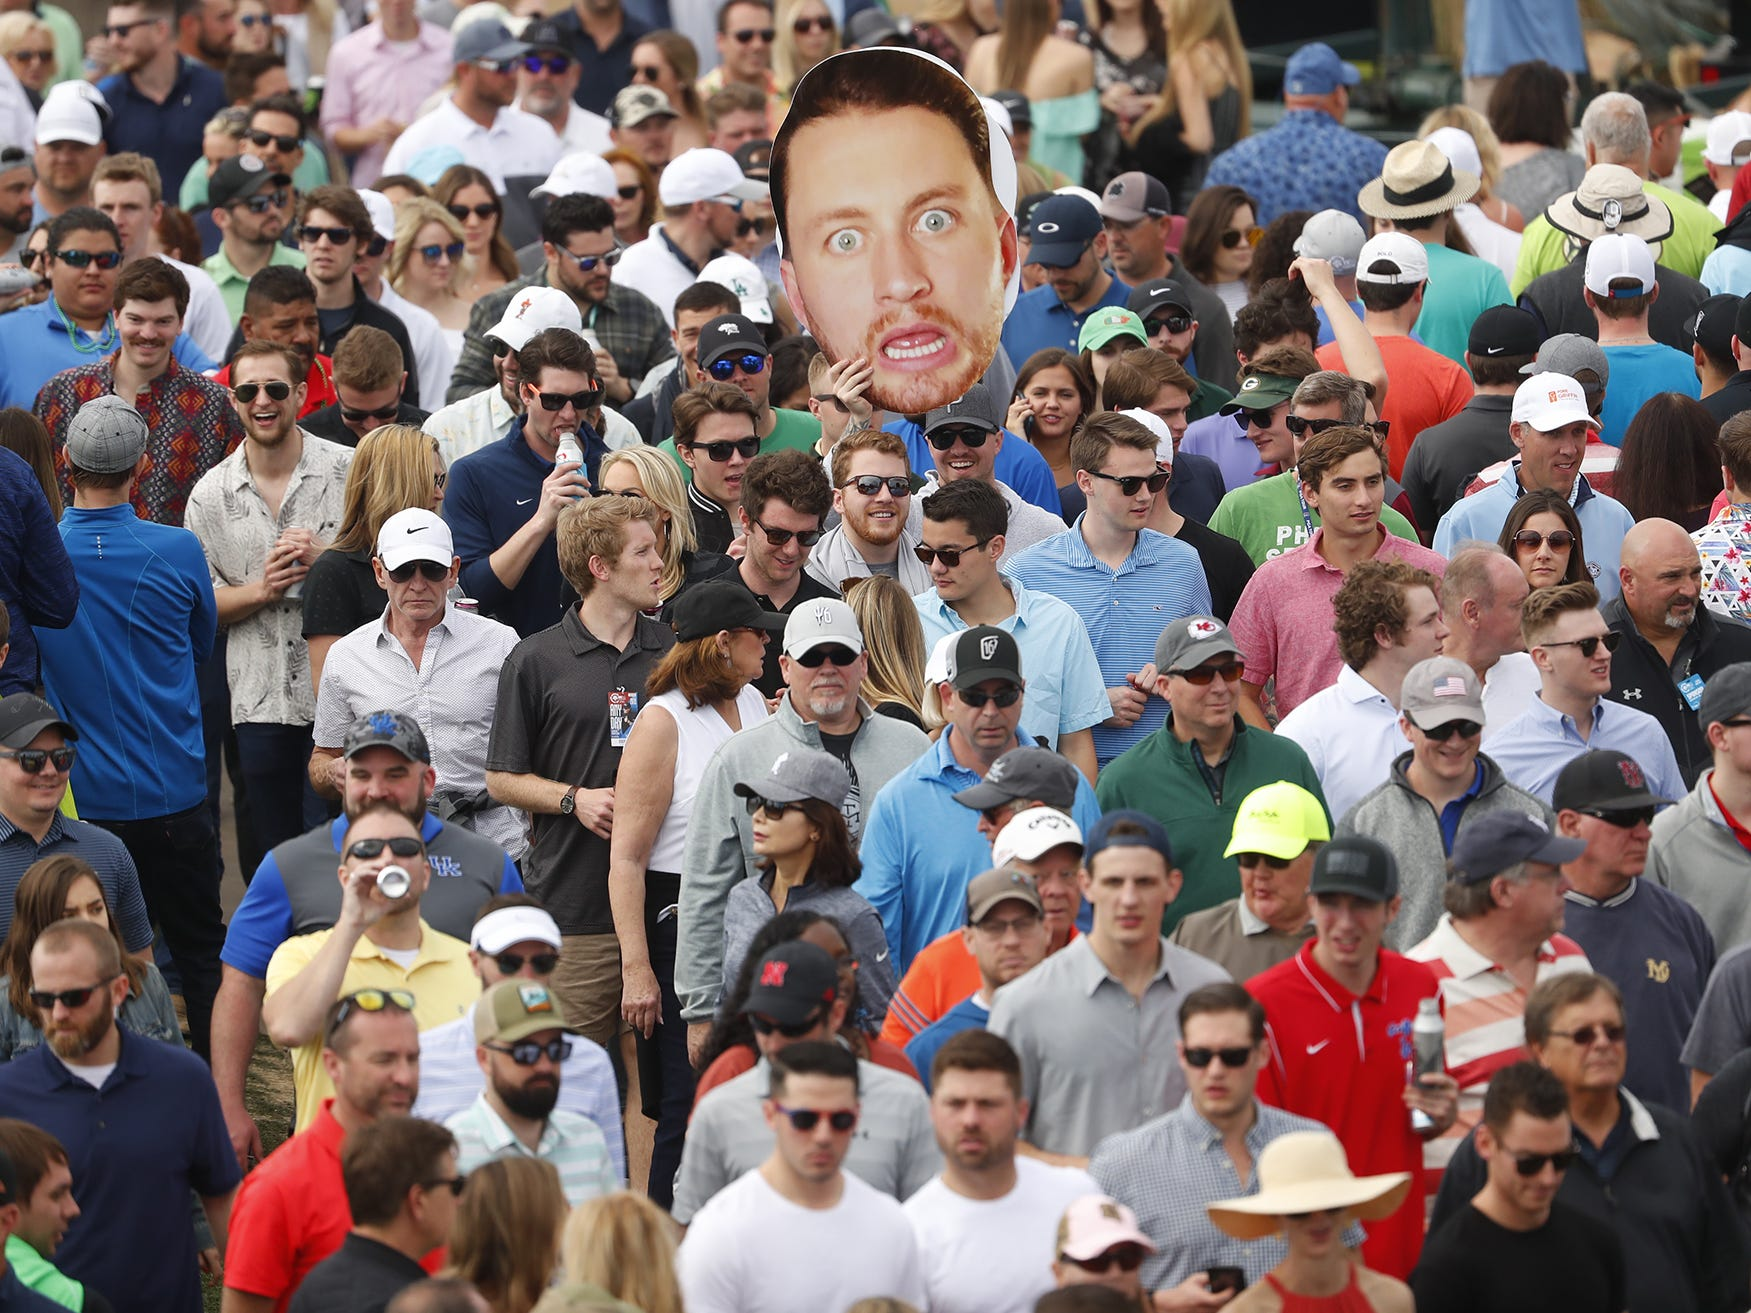 A cutout head seen above a mass crowd during the third round of the Waste Management Phoenix Open at TPC Scottsdale in Scottsdale, Ariz. on February 2, 2019.